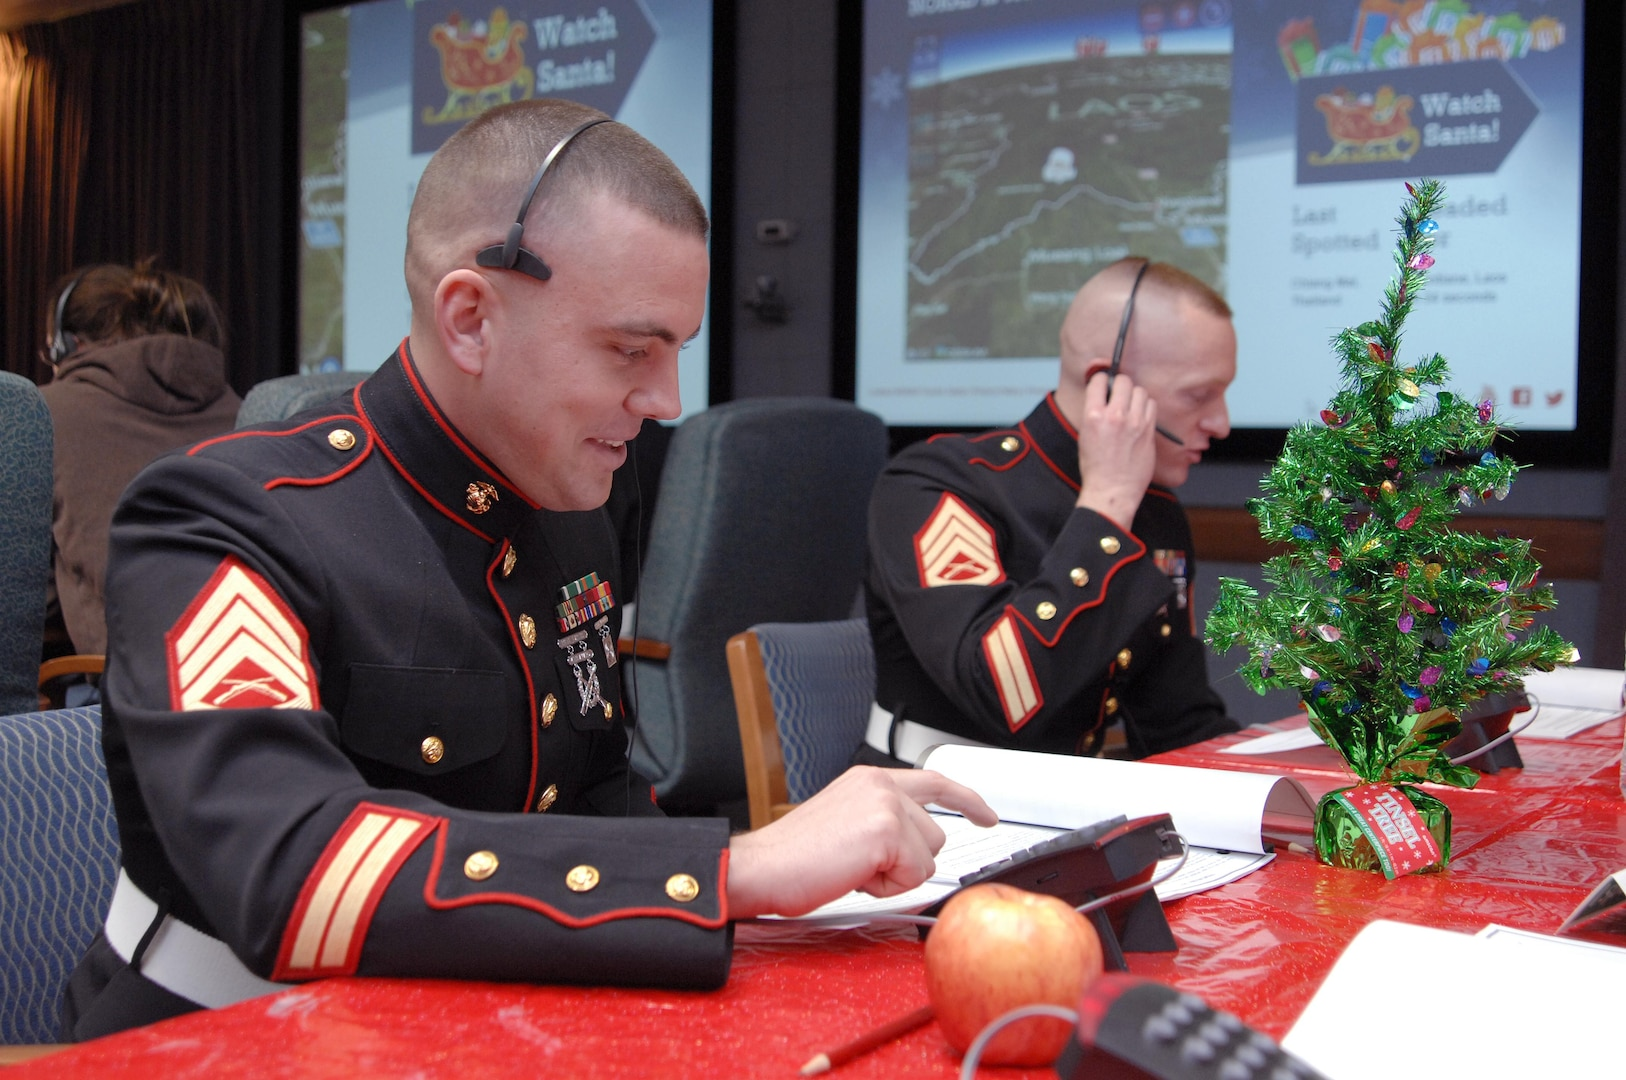 PETERSON AIR FORCE BASE, Colo. - Marine Staff Sgts. Hugh Wood and Randall Ayers, NORAD and USNORTHCOM, take calls at the NORAD Tracks Santa Operations Center Dec. 24, 2012. Wood and Ayers came to the operations center to collect toys for the Marine Corps' Toys for Tots program and took a break to participate in NORAD Tracks Santa. (U.S. Air Force photo by Tech. Sgt. Thomas J. Doscher)